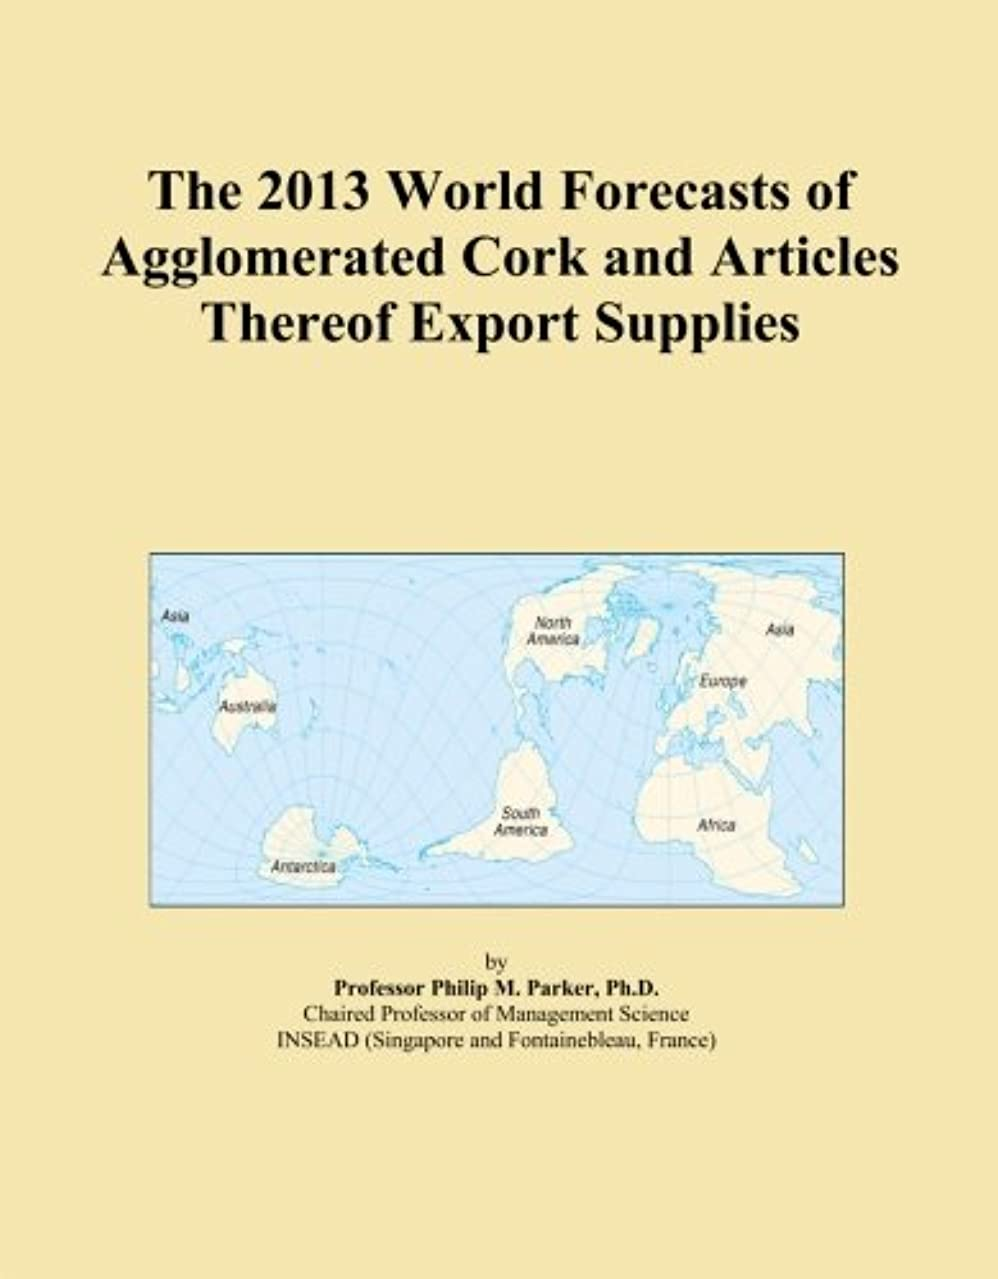 The 2013 World Forecasts of Agglomerated Cork and Articles Thereof Export Supplies